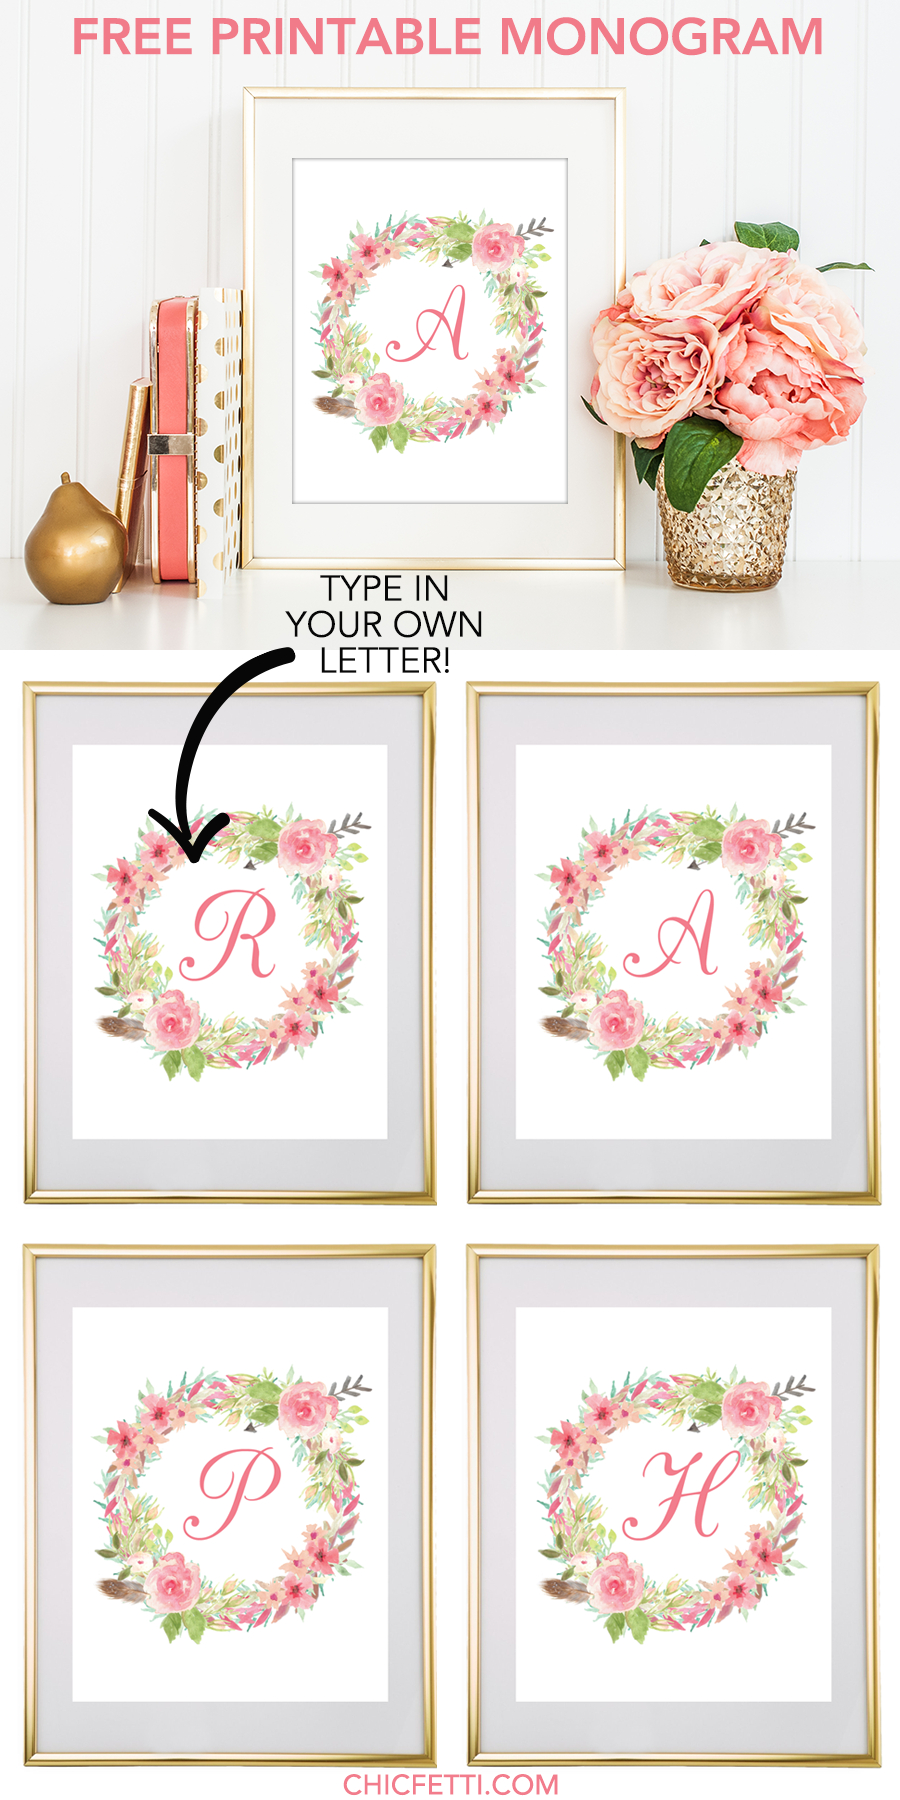 Watercolor Floral Wreath Monogram Maker | Free Printable Monograms - Free Printable Monogram